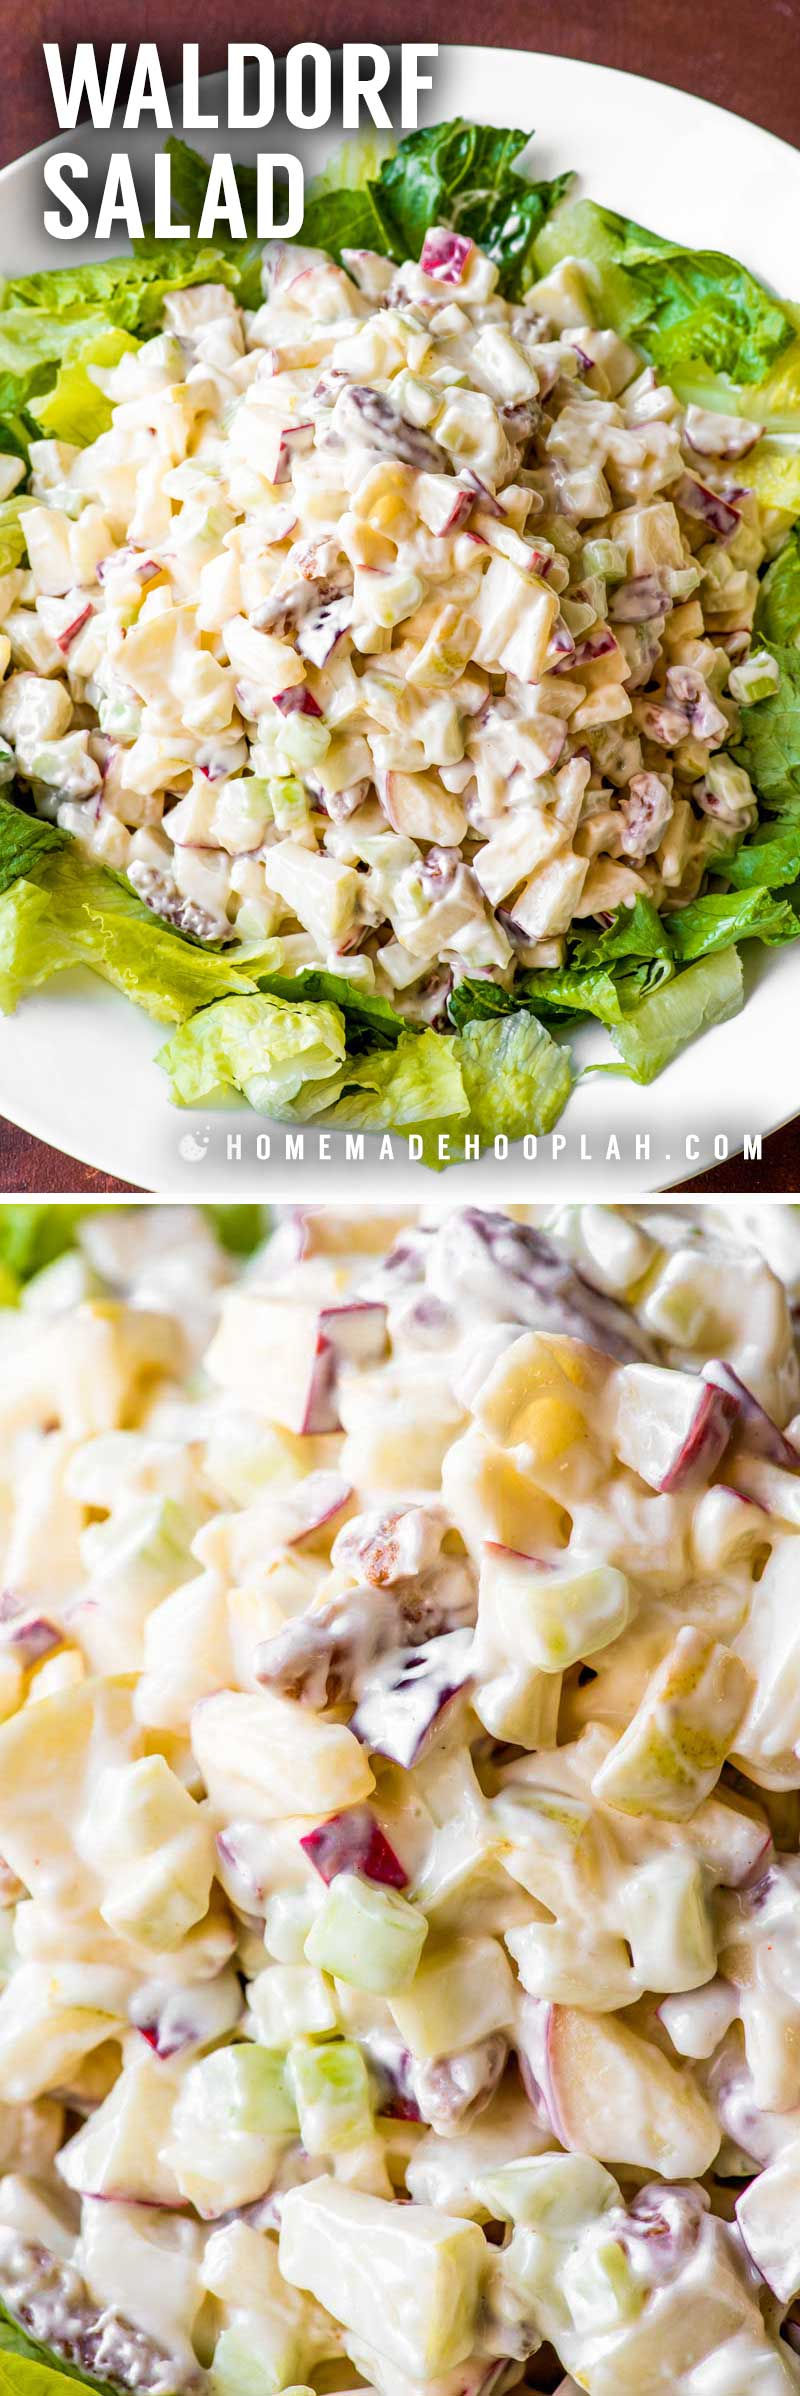 Waldorf Salad! This sweeter twist on the classic Waldorf salad is made with red apples, green pears, fresh celery, and crunch pecans which are all tossed in a dressing of Miracle Whip and fruit juices. Perfect for potlucks and parties! | HomemadeHooplah.com